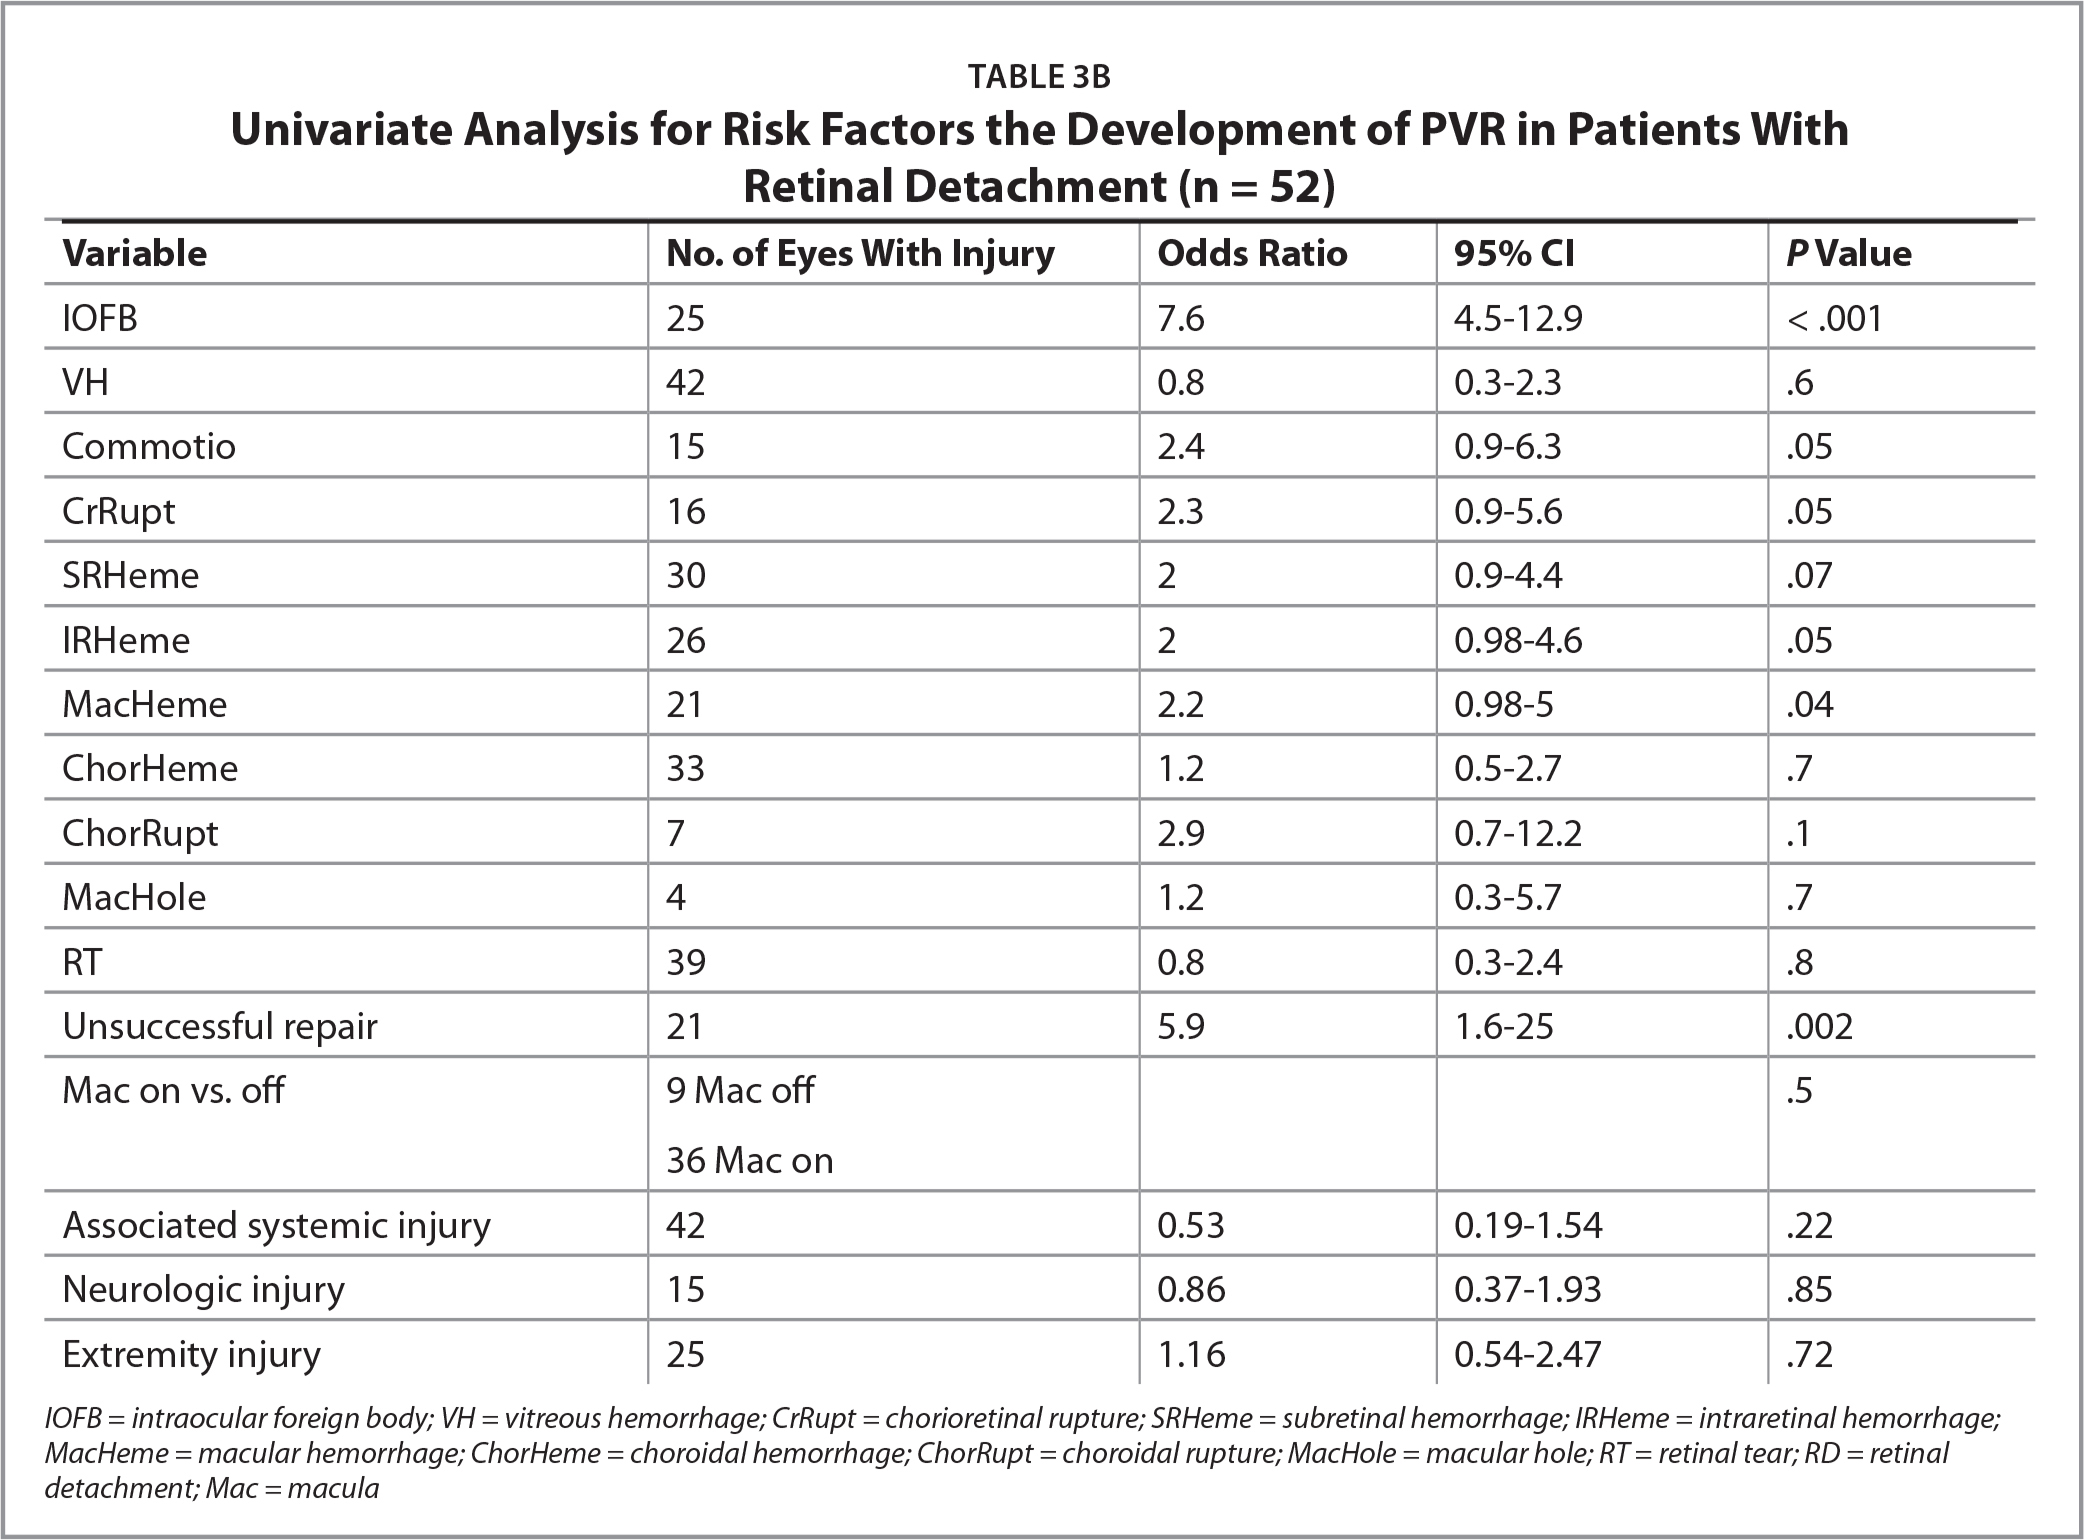 Univariate Analysis for Risk Factors the Development of PVR in Patients With Retinal Detachment (n = 52)